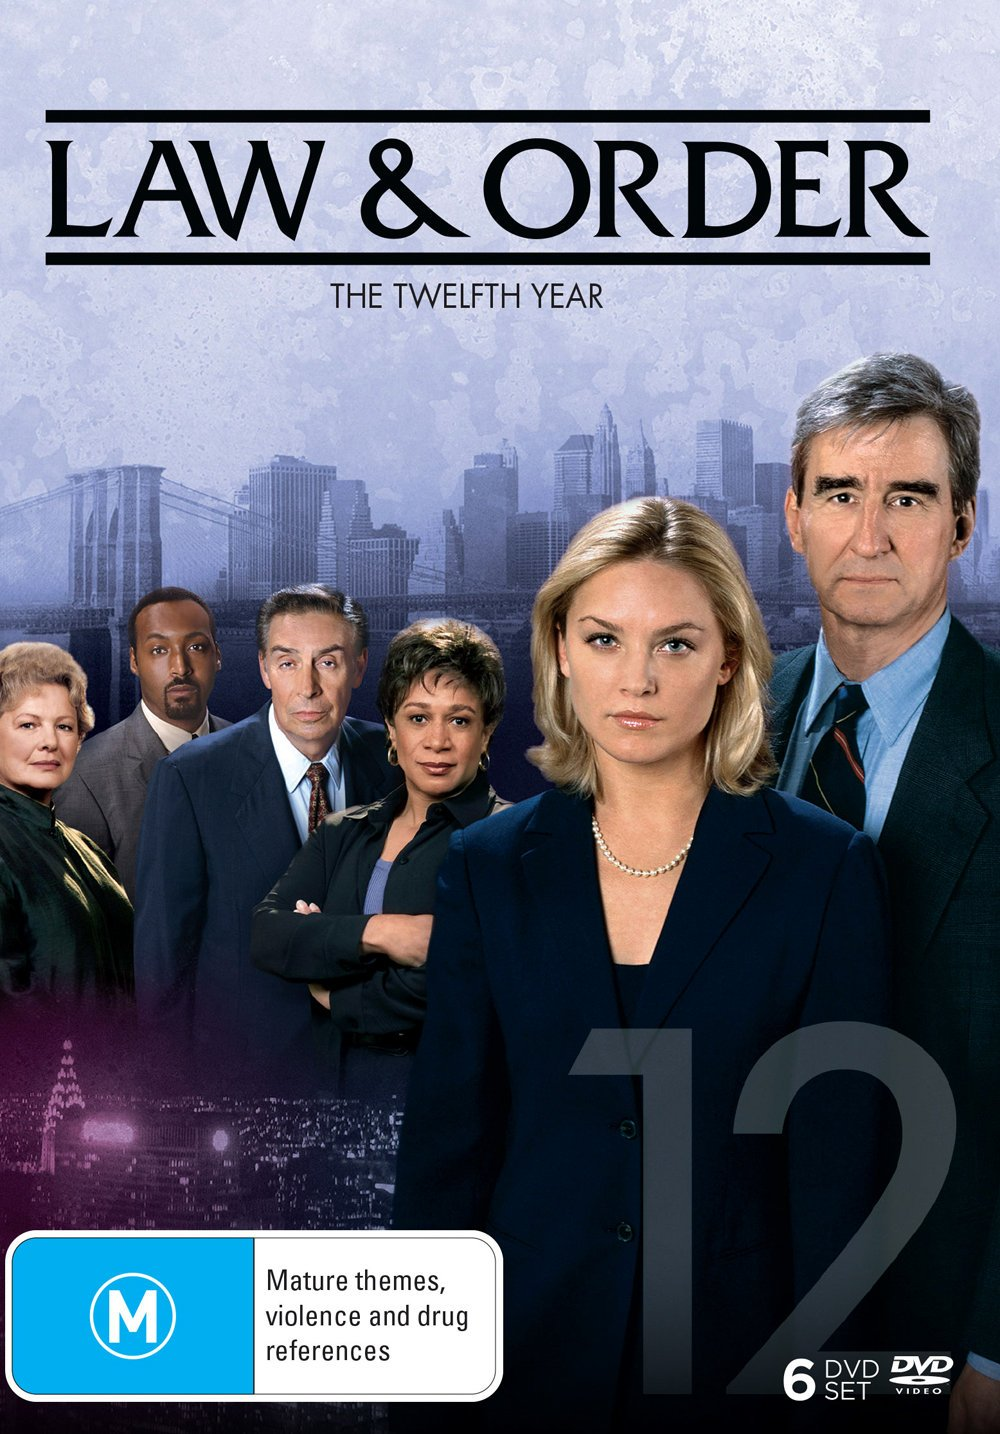 Law and Order Today's only Season 12 6 Regio PAL NON-USA Format Discs Manufacturer direct delivery